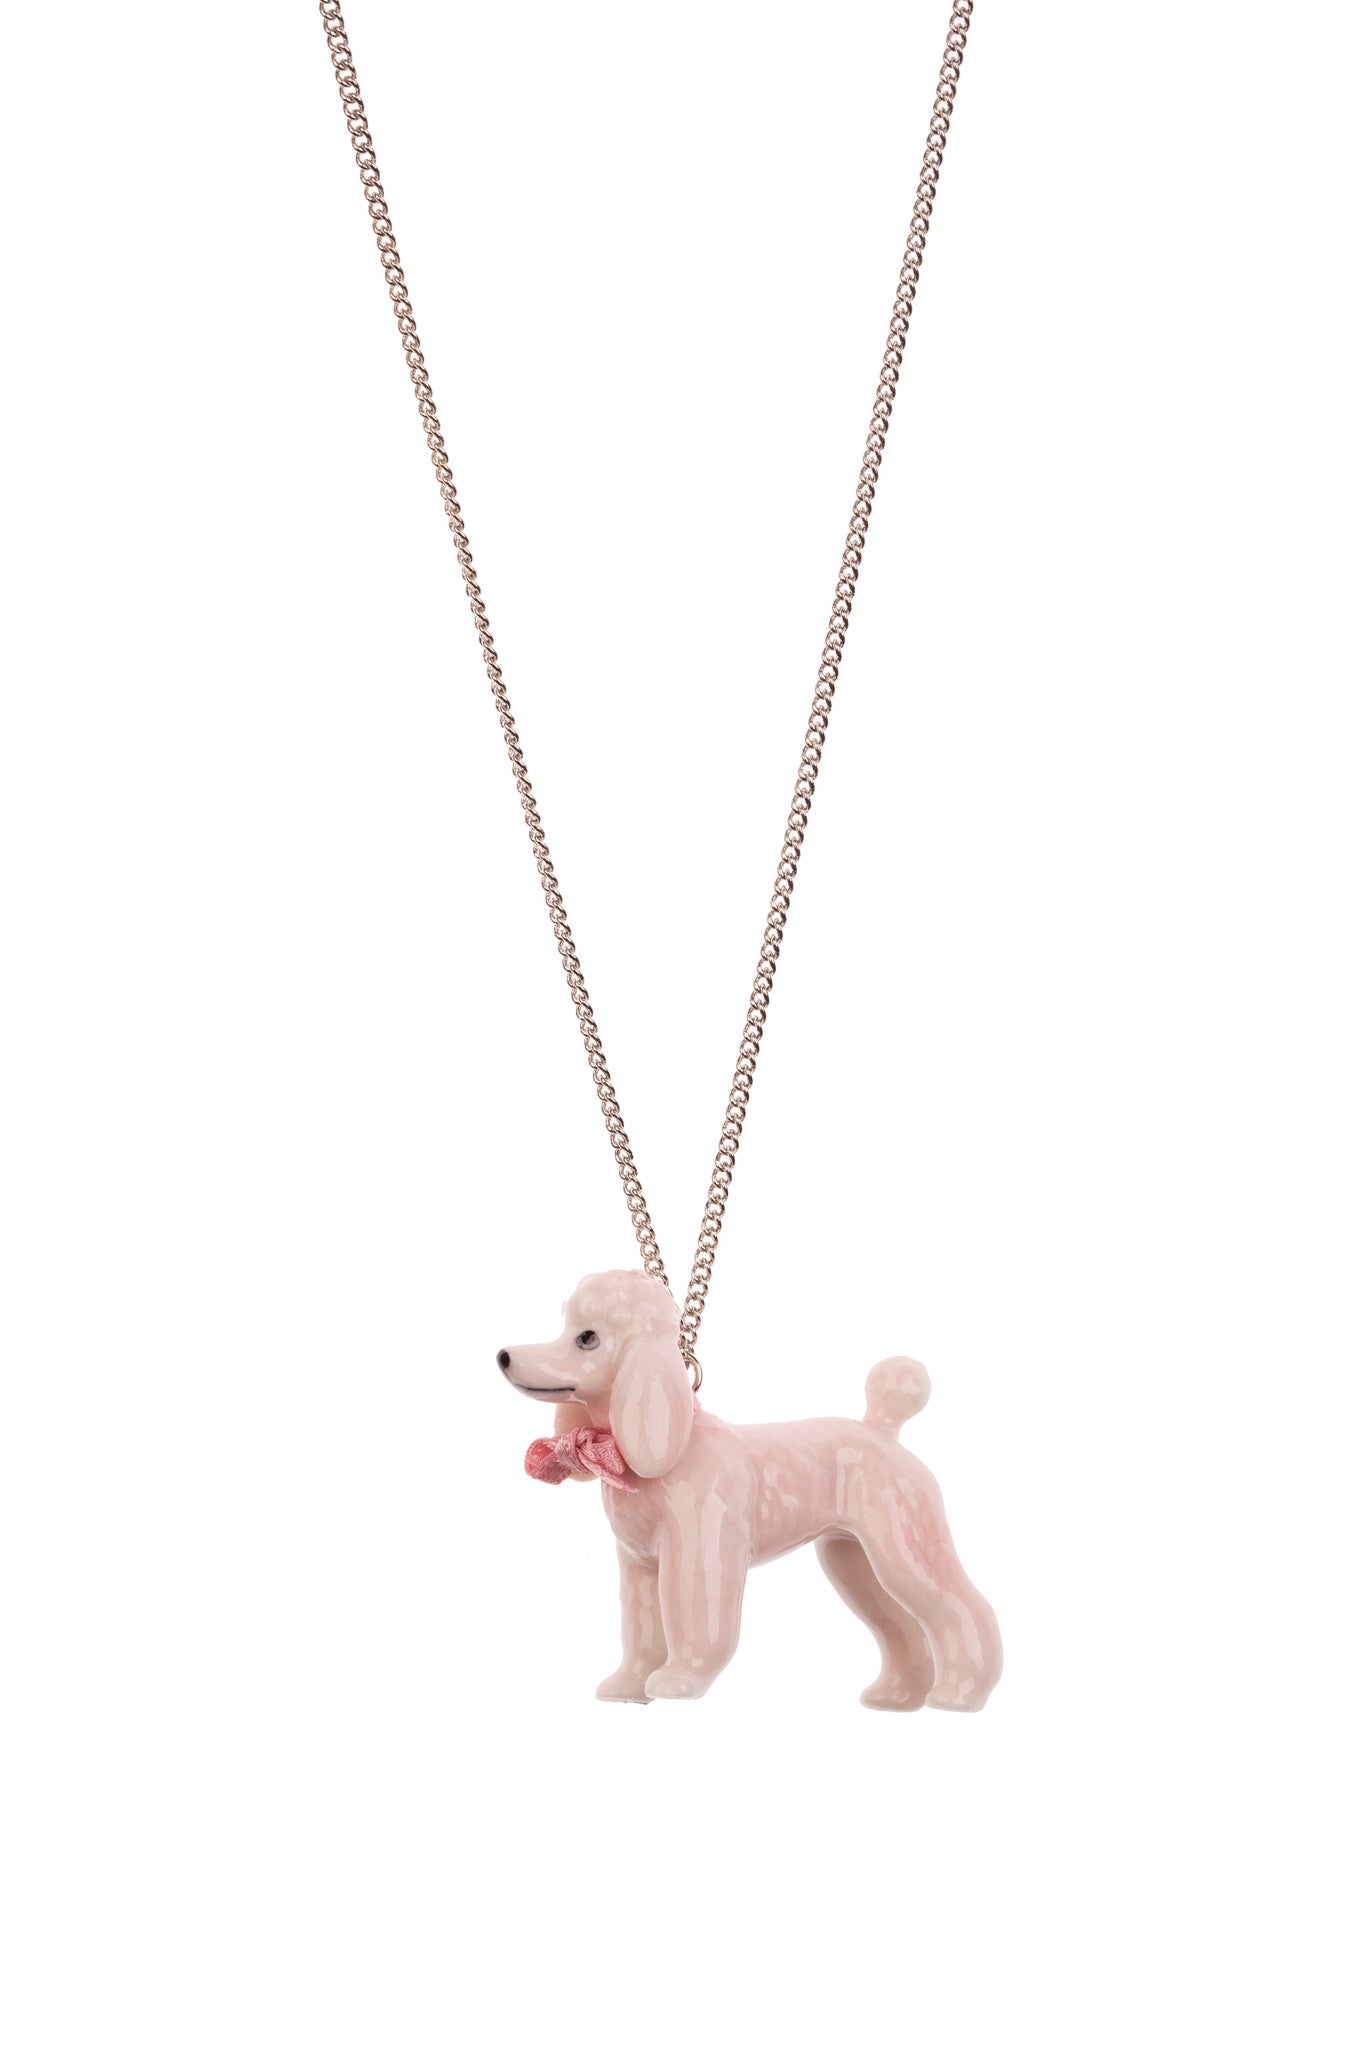 Pink Poodle Necklace